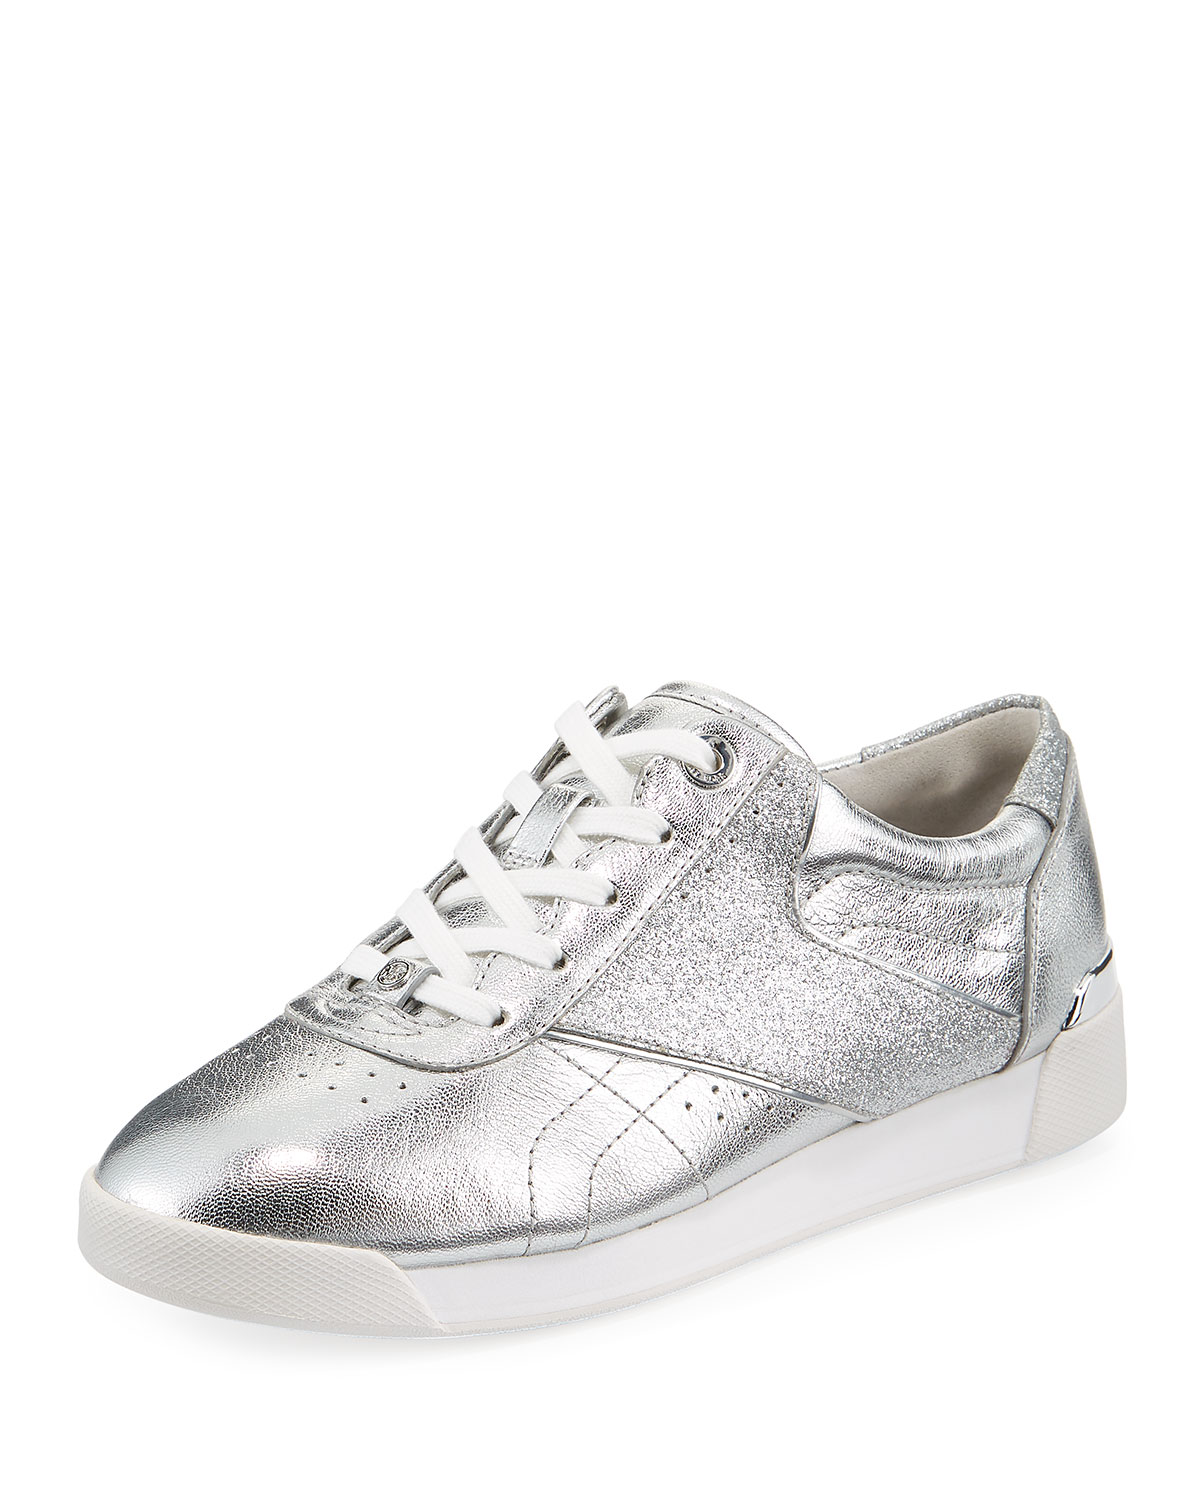 1eb8f6c508 MICHAEL Michael Kors Addie Metallic Lace-Up Sneakers, Silver ...